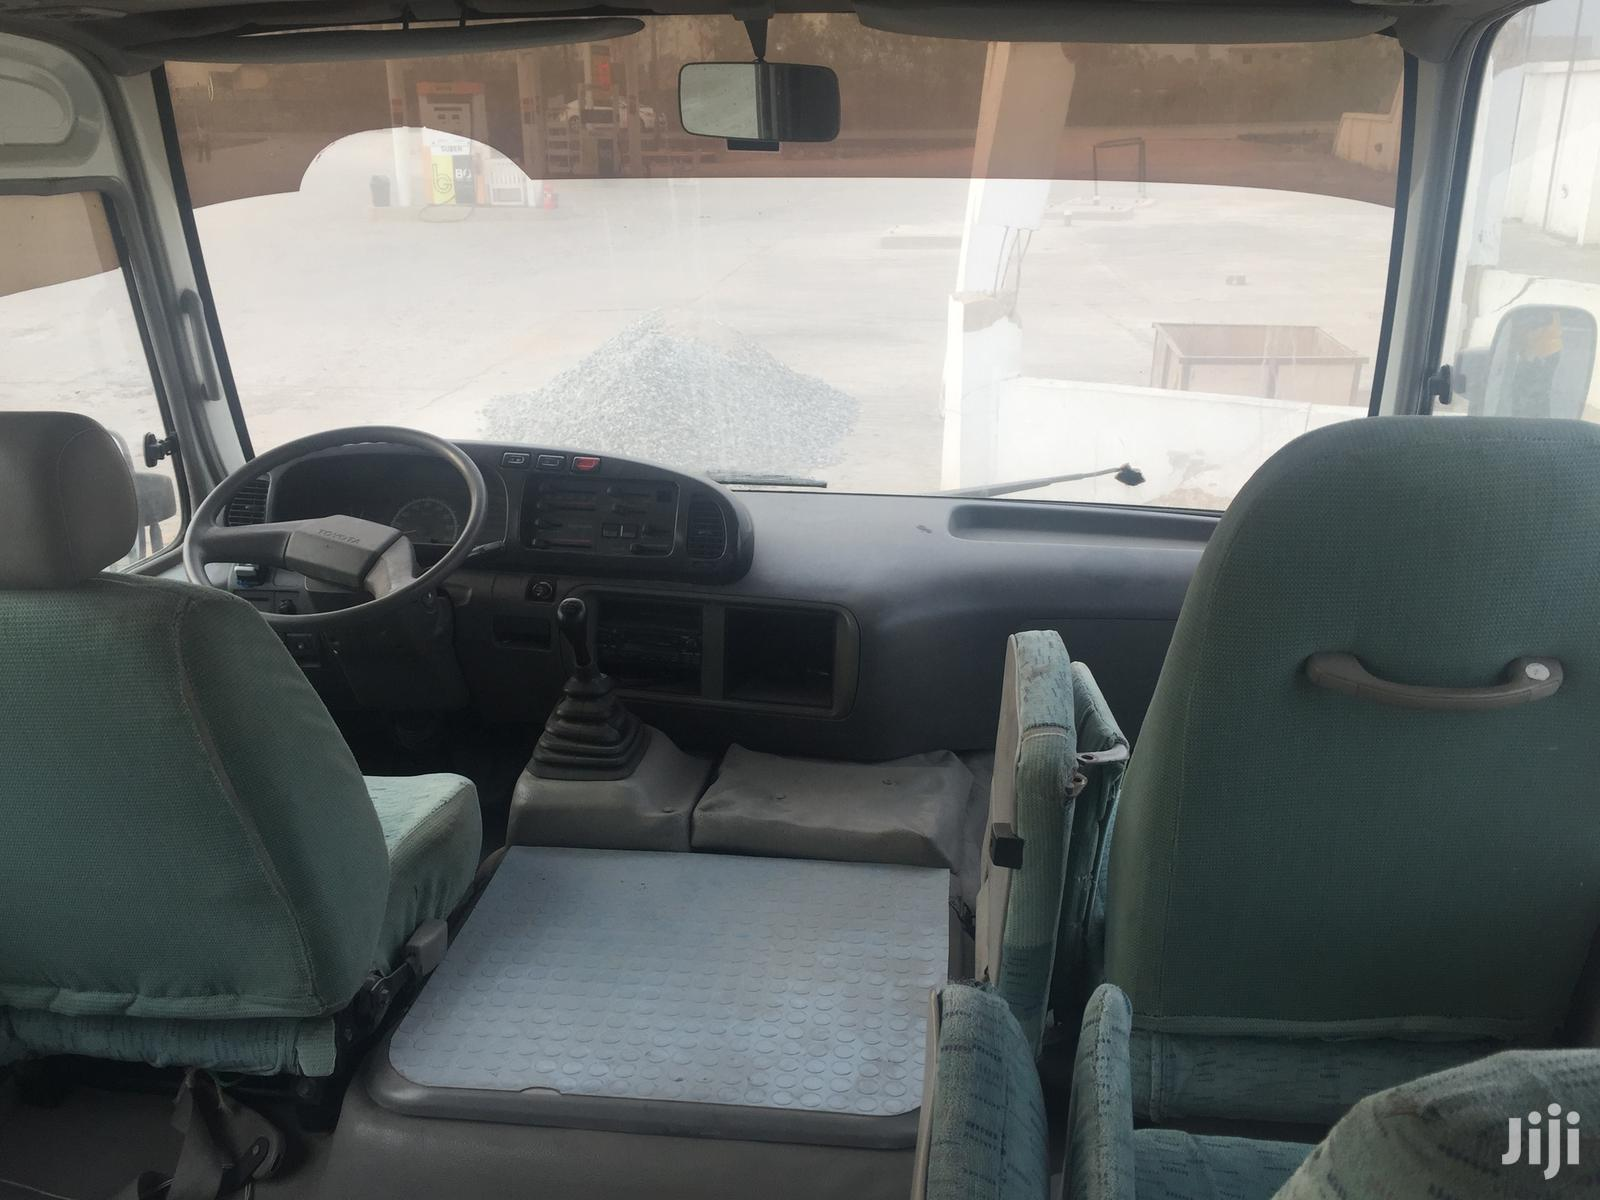 Home Used Toyota Coaster | Buses & Microbuses for sale in Ga West Municipal, Greater Accra, Ghana